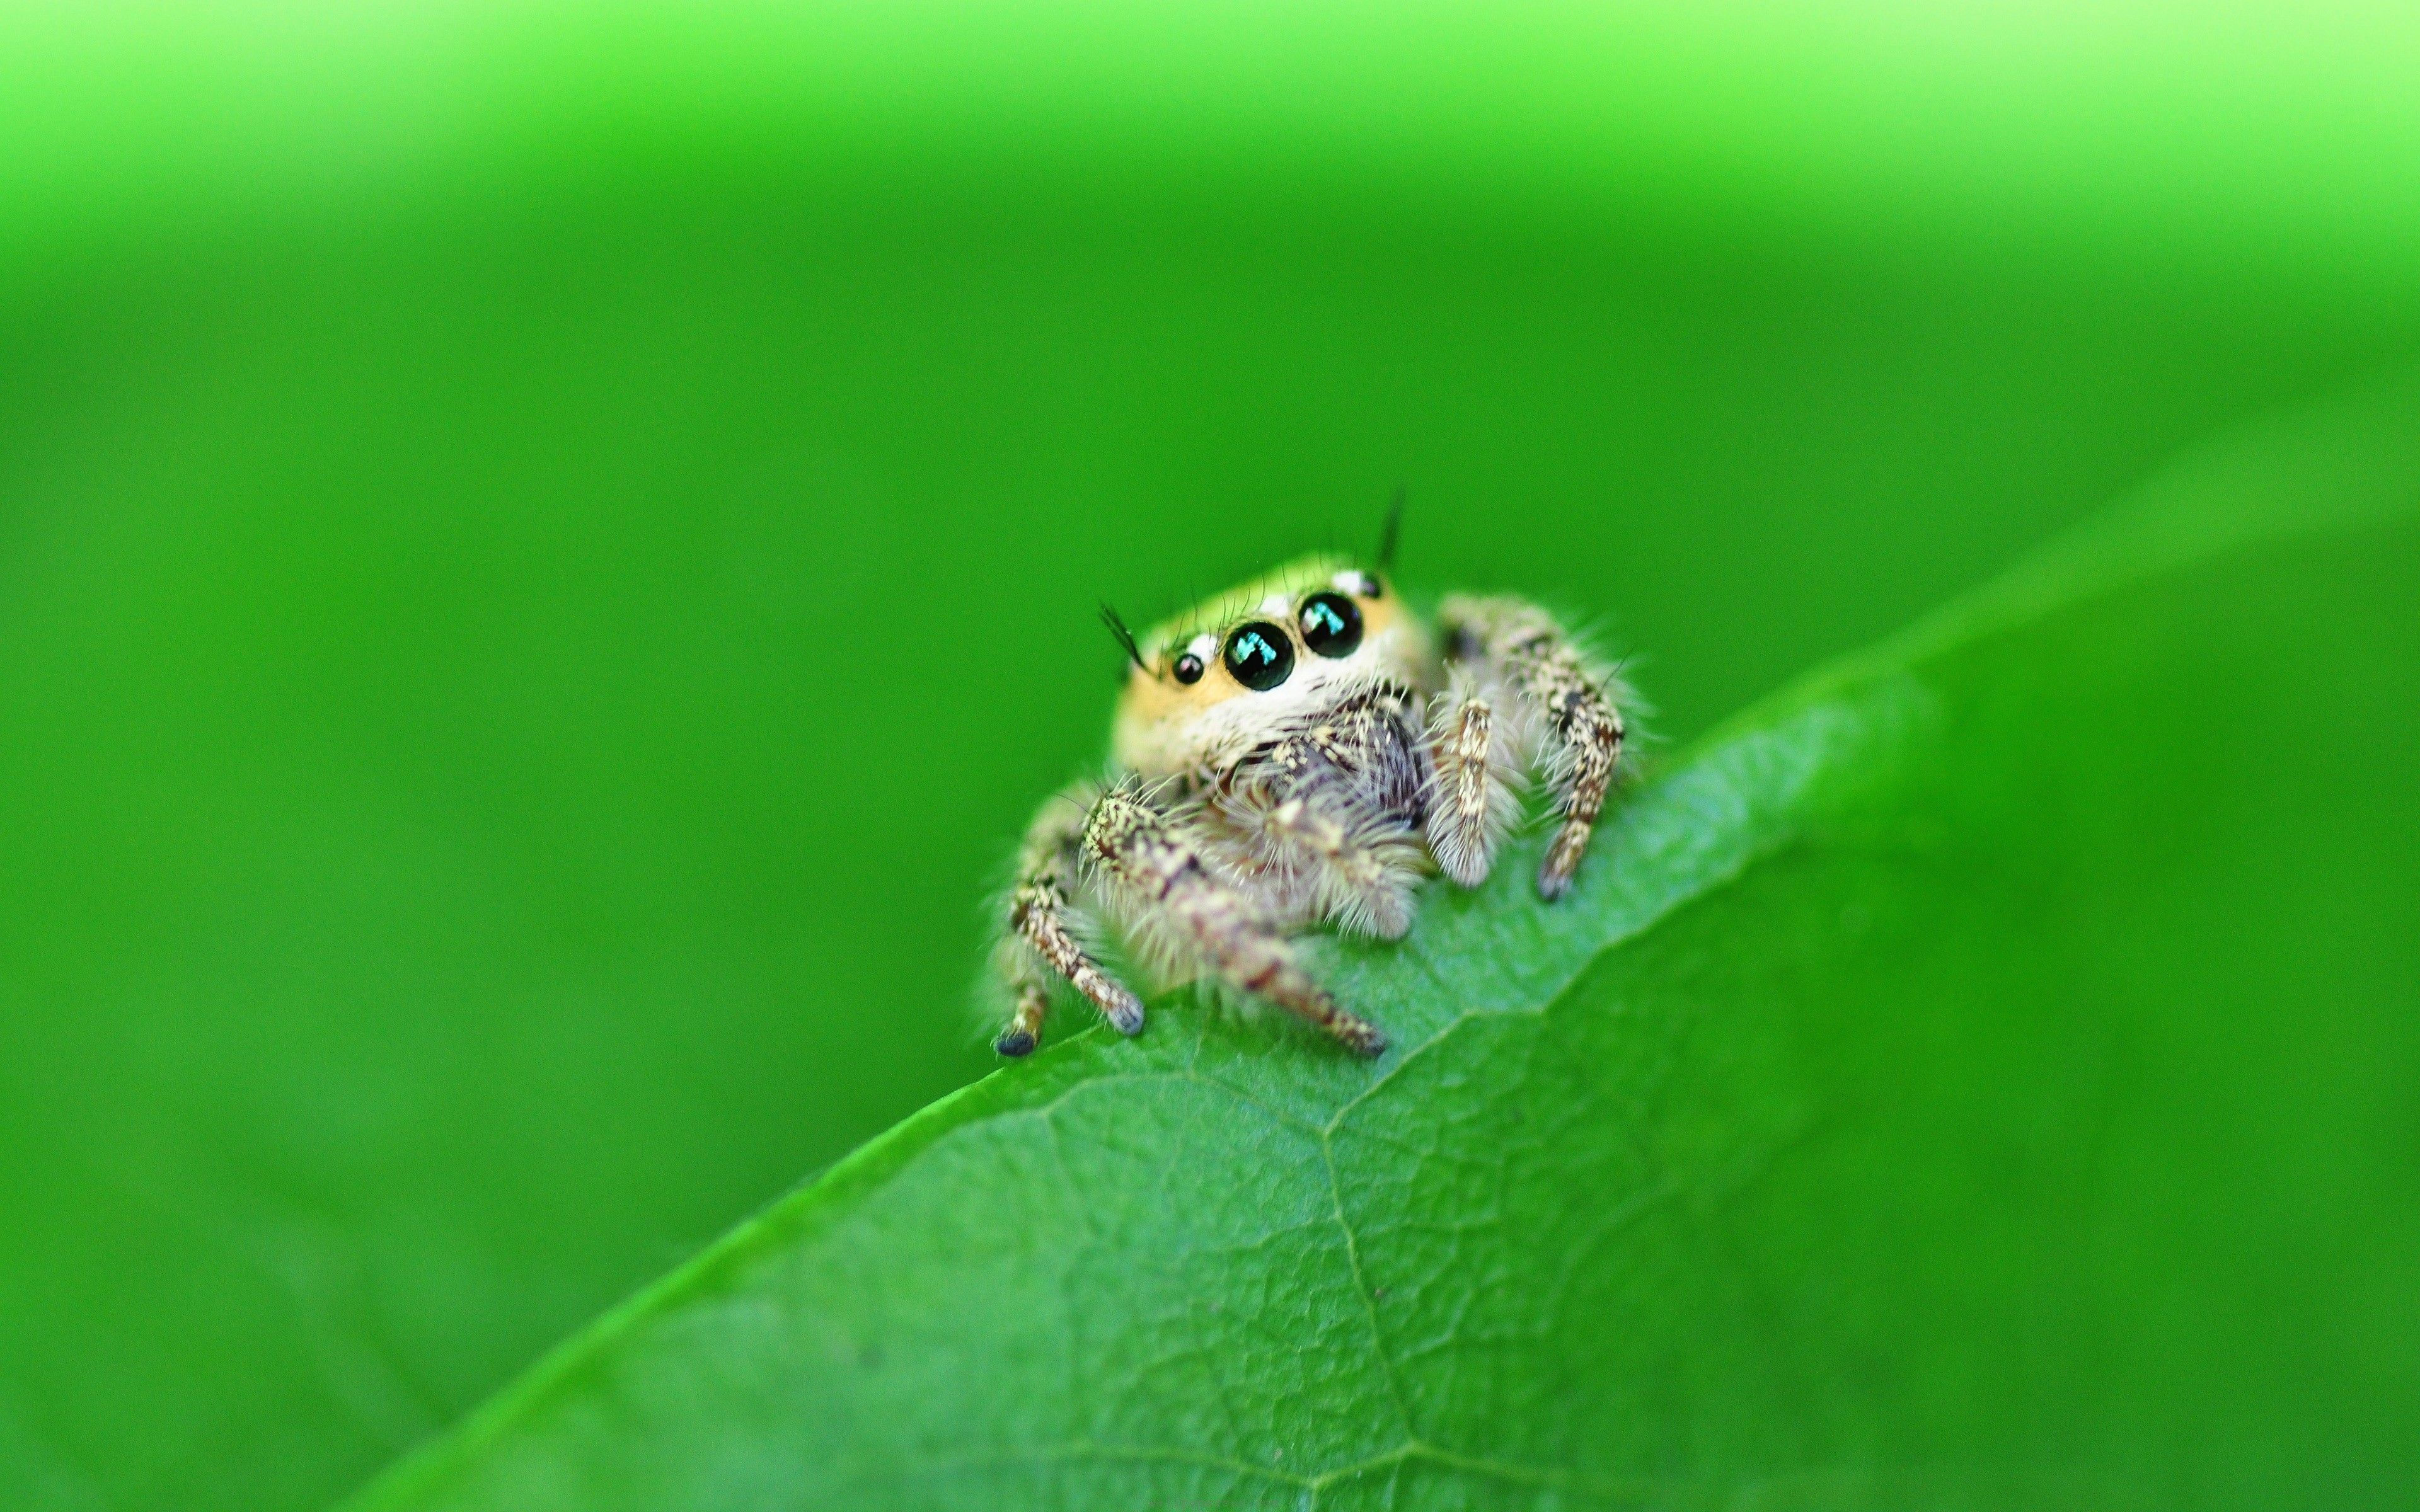 Cute Jumping Spider Wallpaper Close Up Nature Insects Photography Macro Spiders Jumping